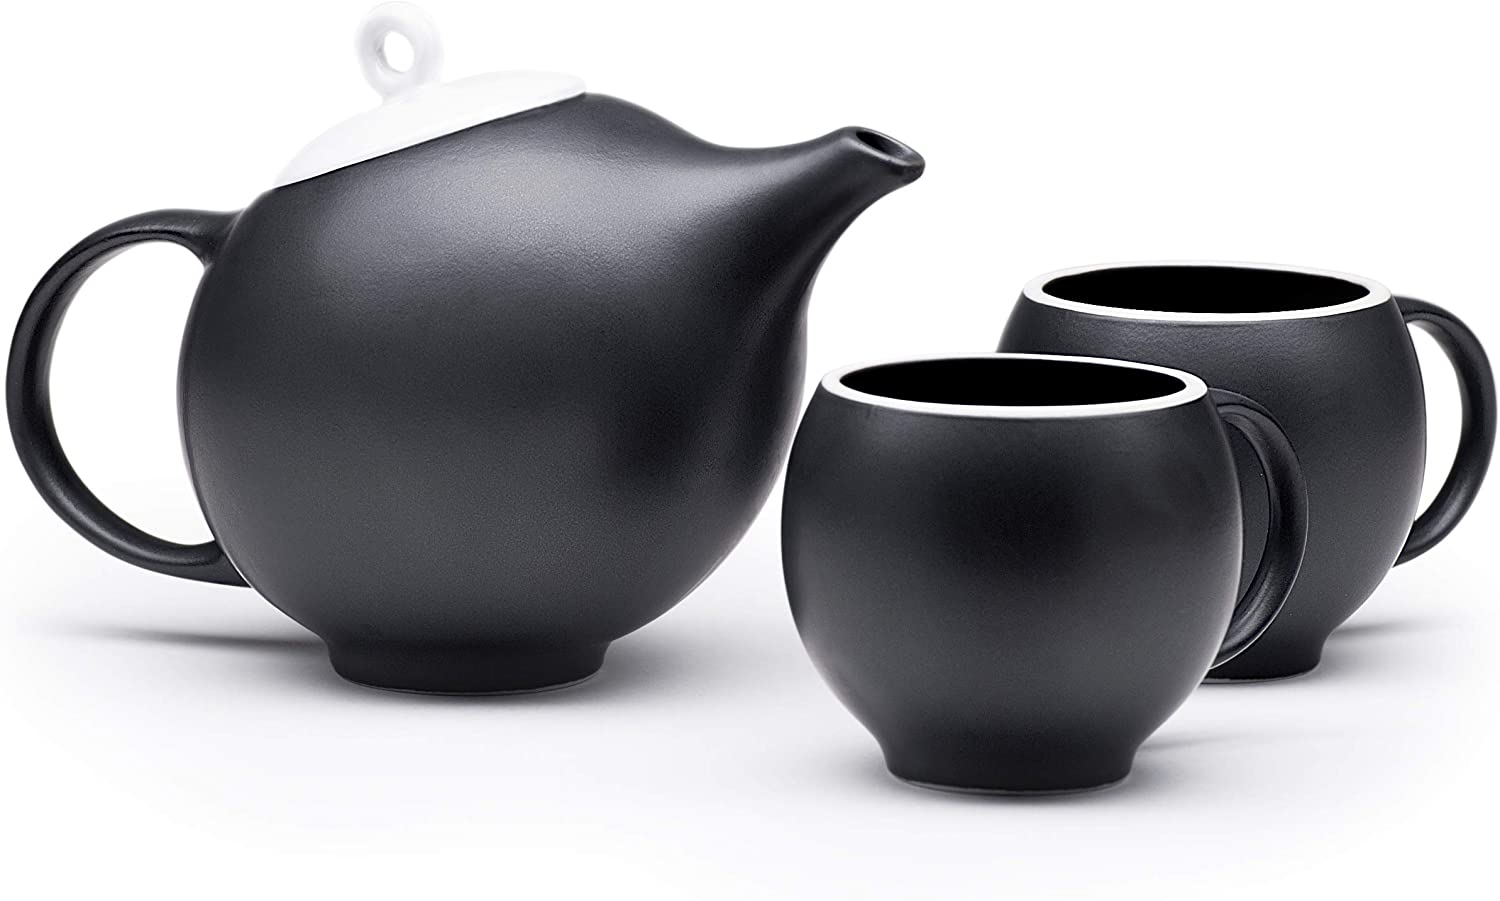 Maia Ming Designs | EVA Ceramic Teapot with 2 teacups and infuser, 20 oz. | Black Matte Stoneware with White Lid | Inspired by Eva Zeisel | Design Award